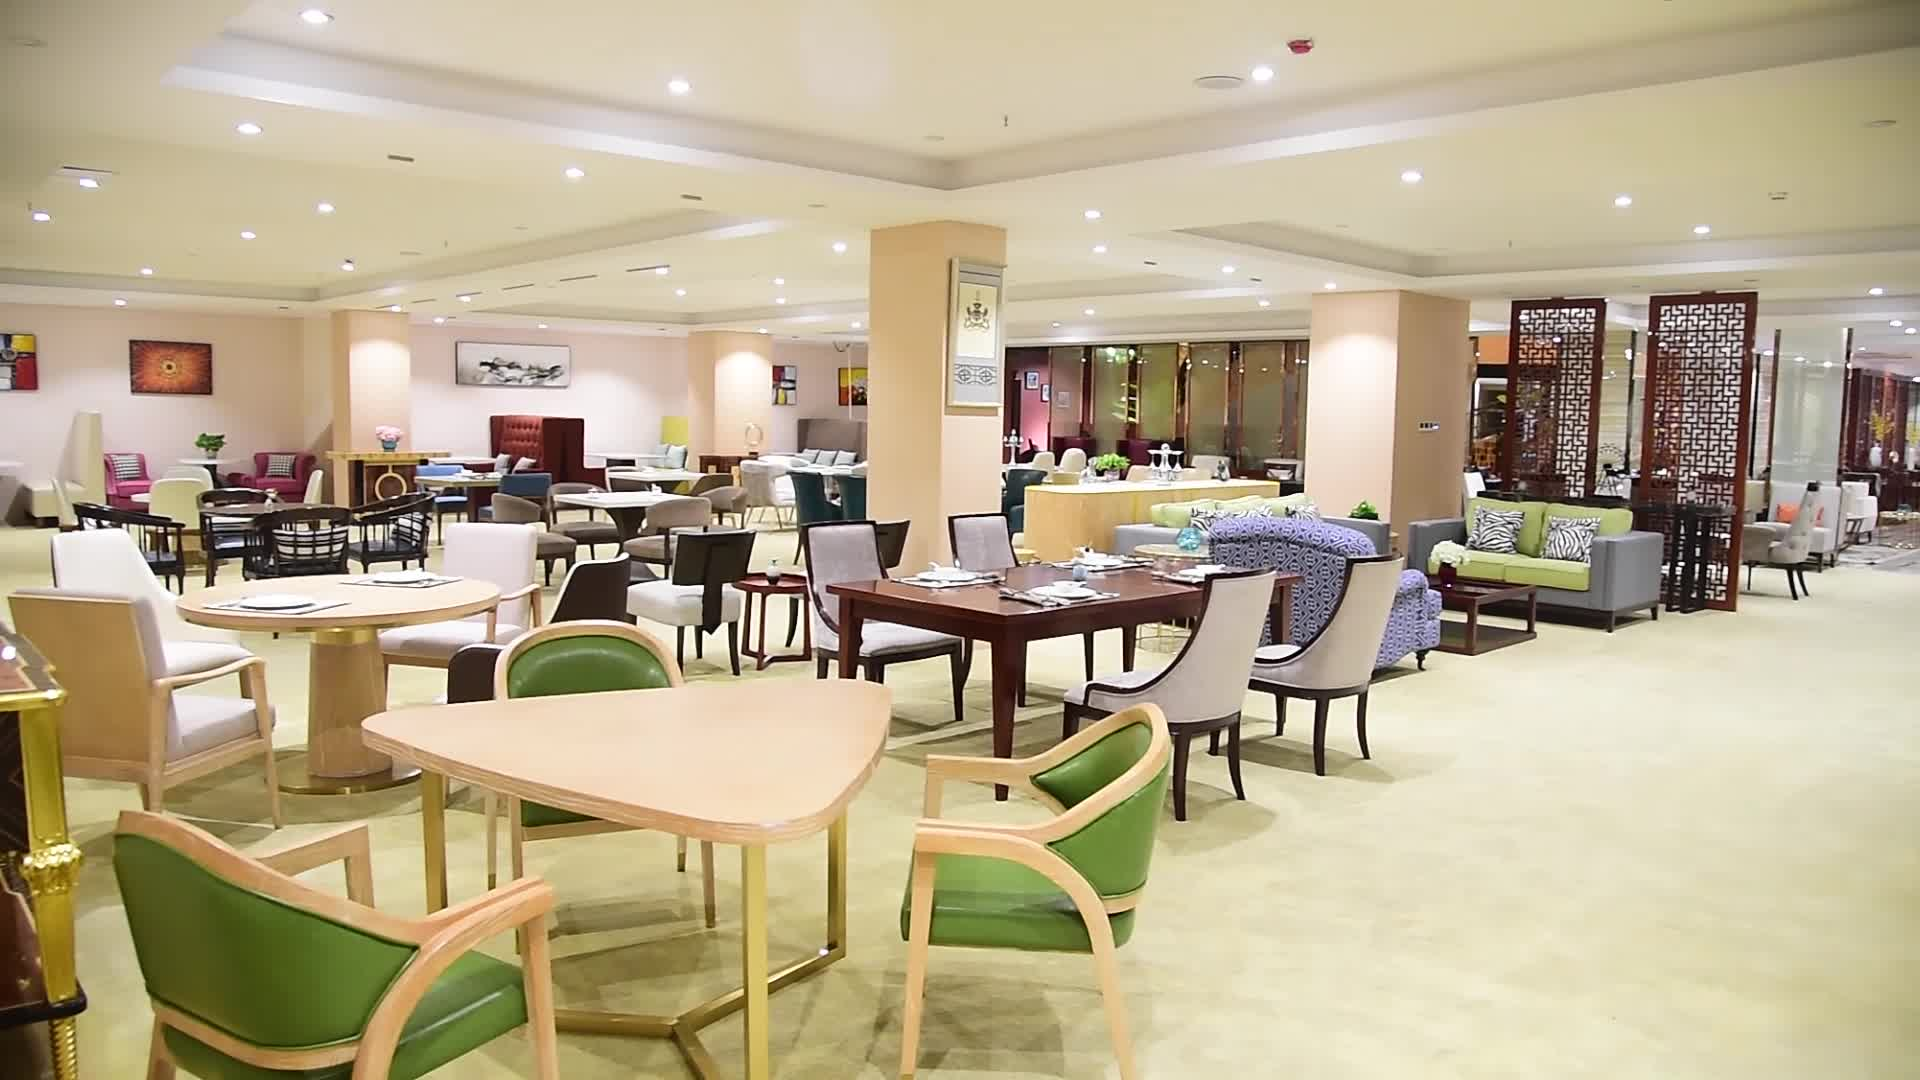 Fast food dubai style eco friendly luxury restaurant furniture for hotel